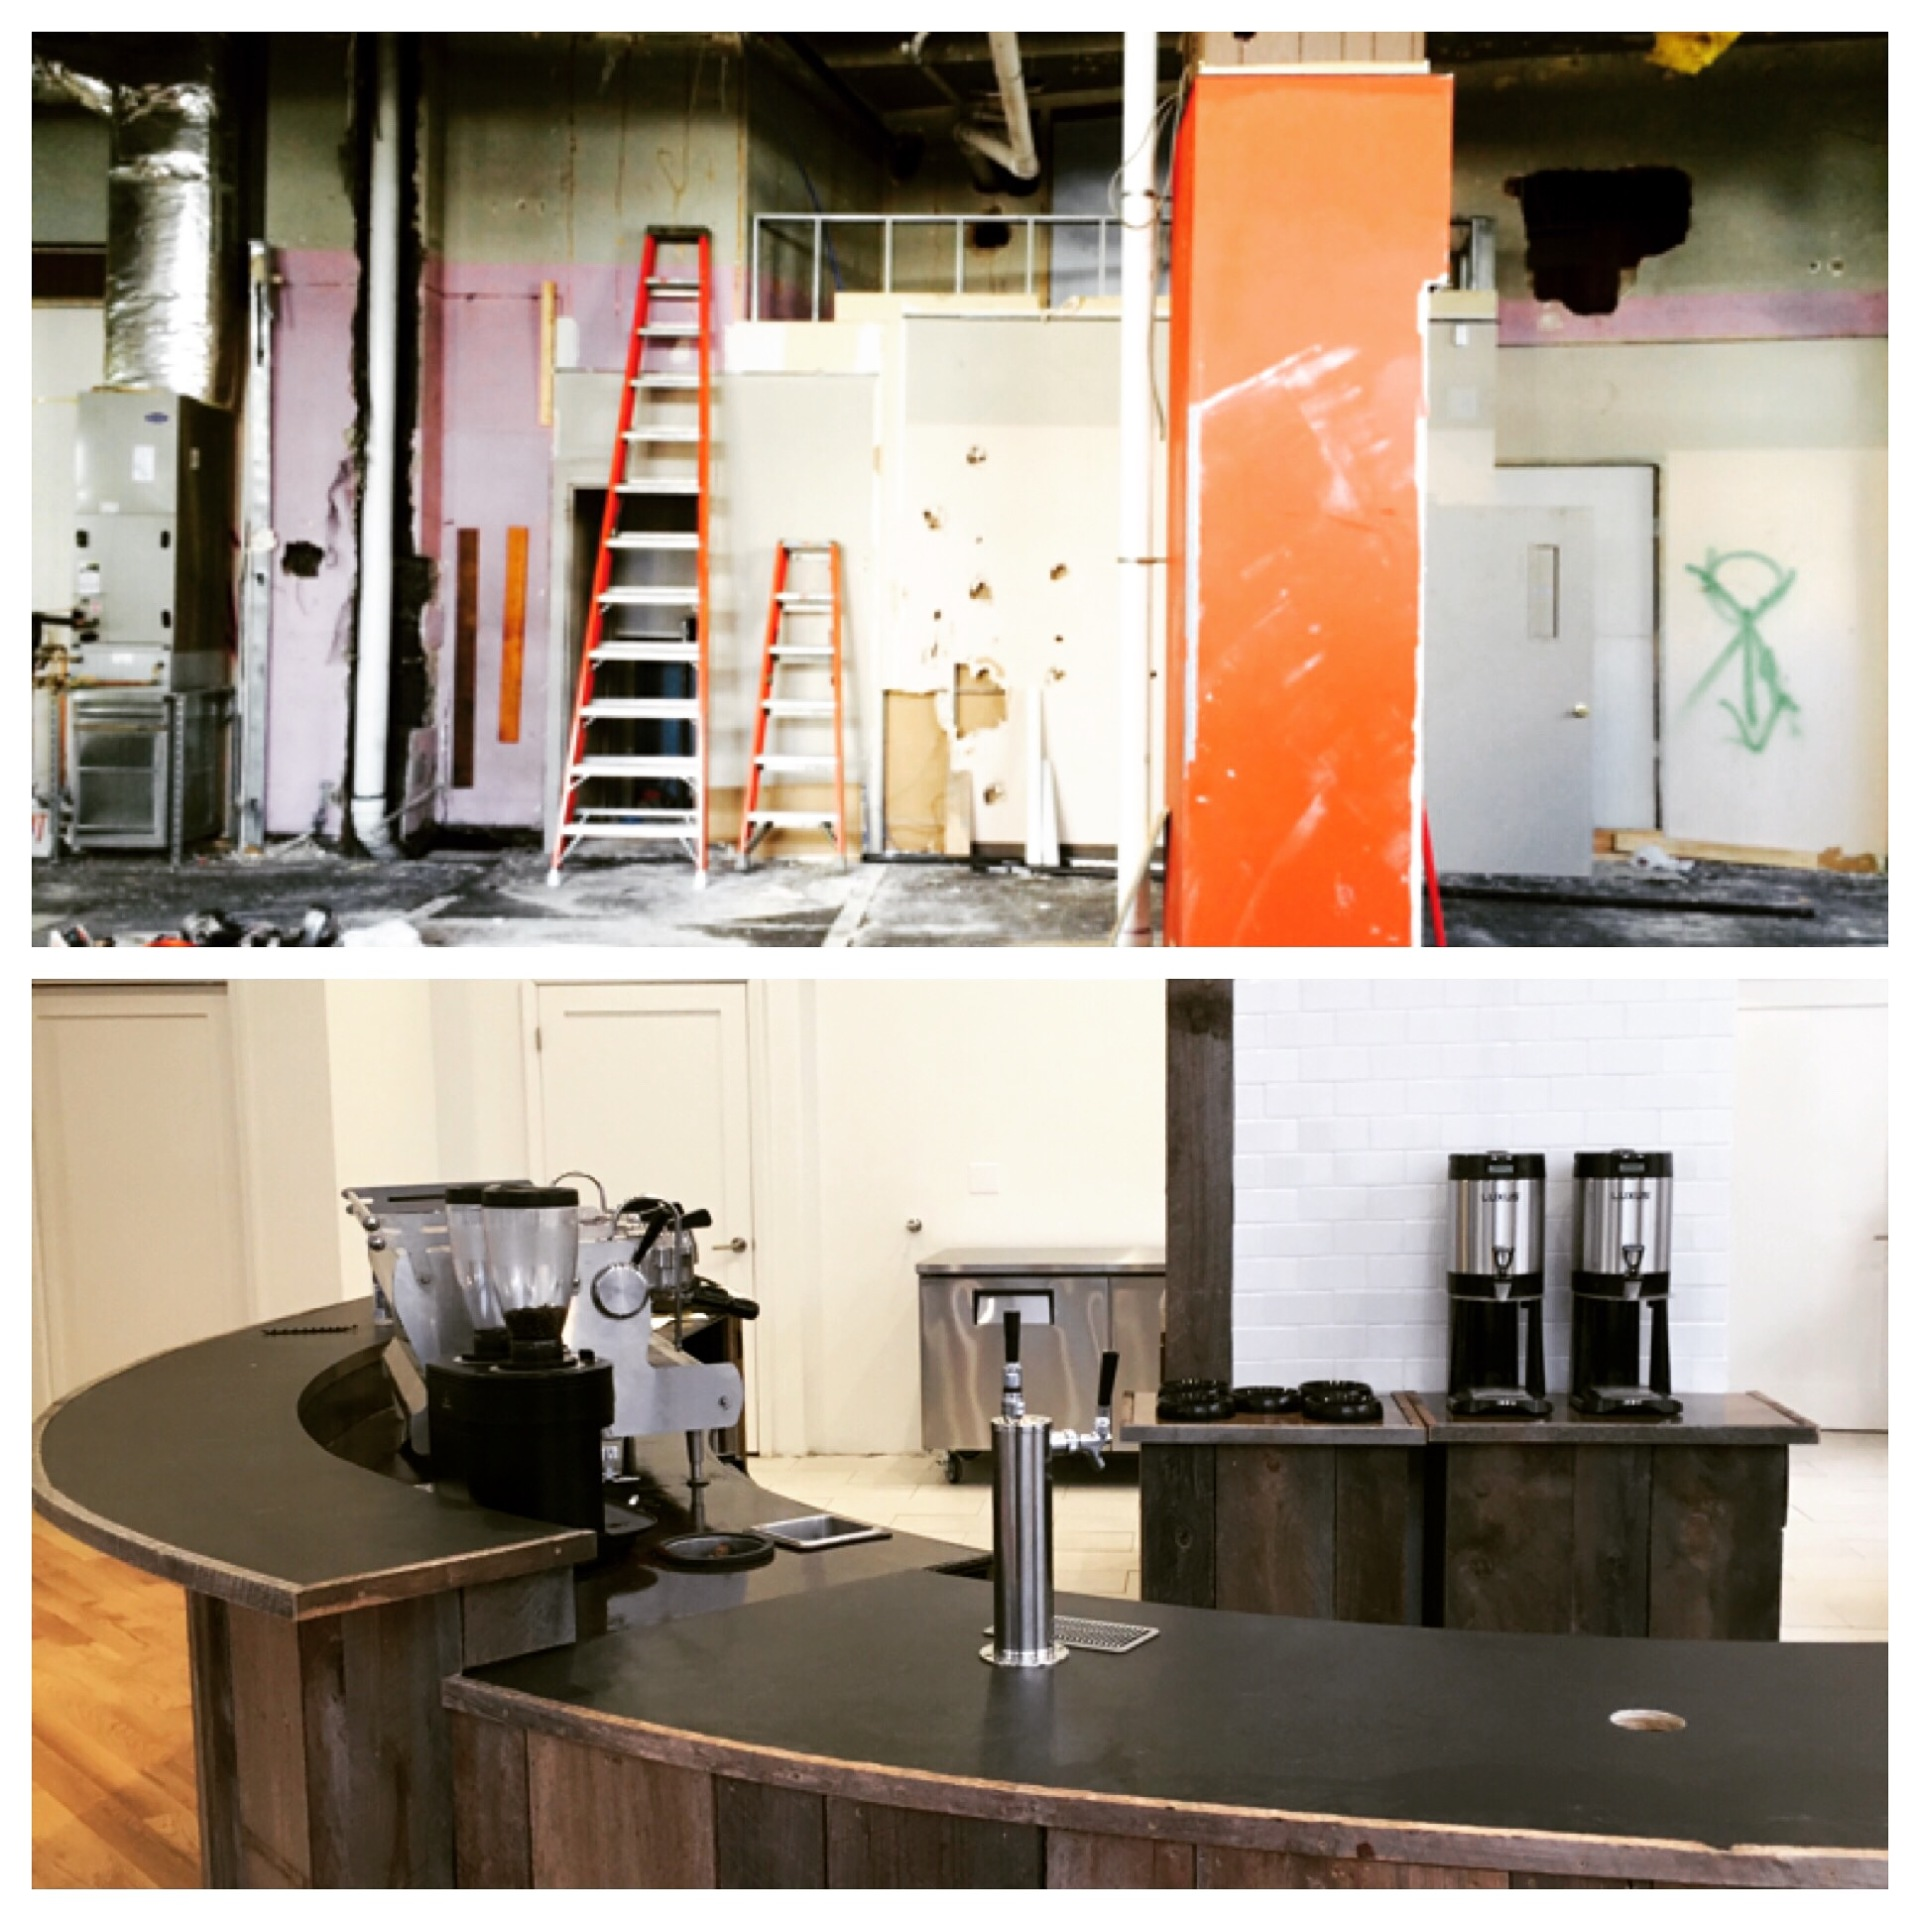 Downtown Albany Grant, Capitalize Albany Corporation, demolition, Arcade Building, specialty coffee shop, retail design, coffee shop design